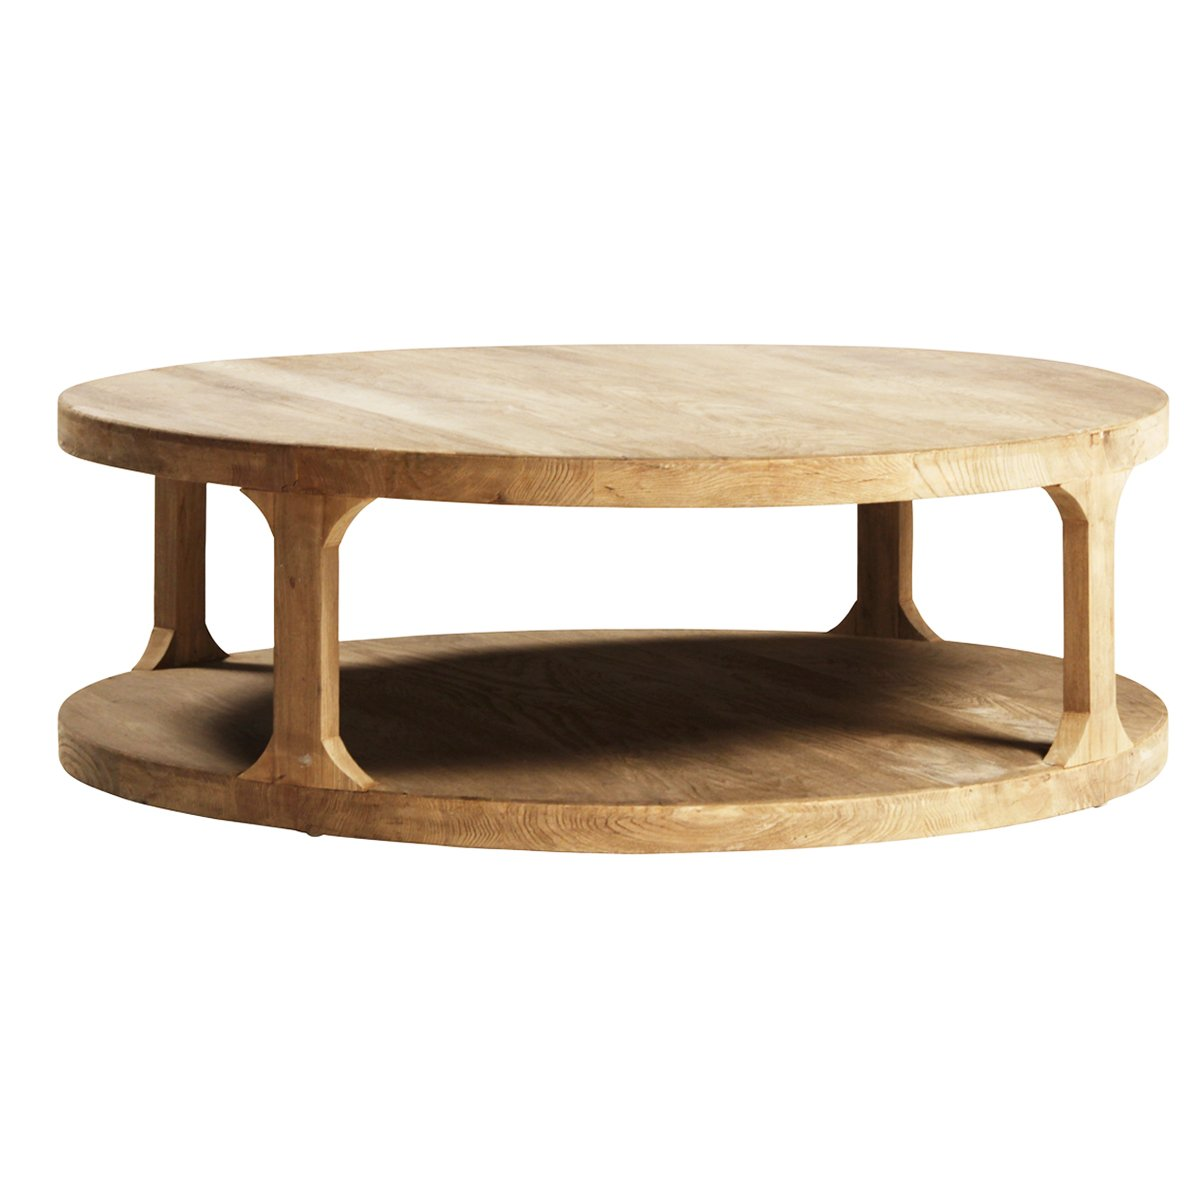 Bled Elm Round Table